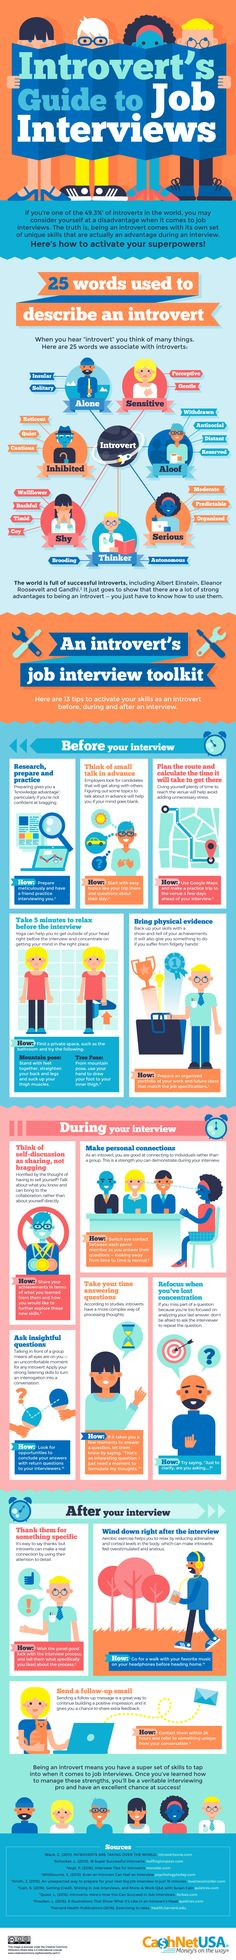 Introvert's Guide to Job Interviews (Infographic) Here's how introverts can use their special skills to excel at a job interview.Here's how introverts can use their special skills to excel at a job interview. Interview Skills, Job Interview Questions, Job Interview Tips, Job Interviews, Interview Preparation, Interview Techniques, Job Resume, Resume Tips, Cv Tips